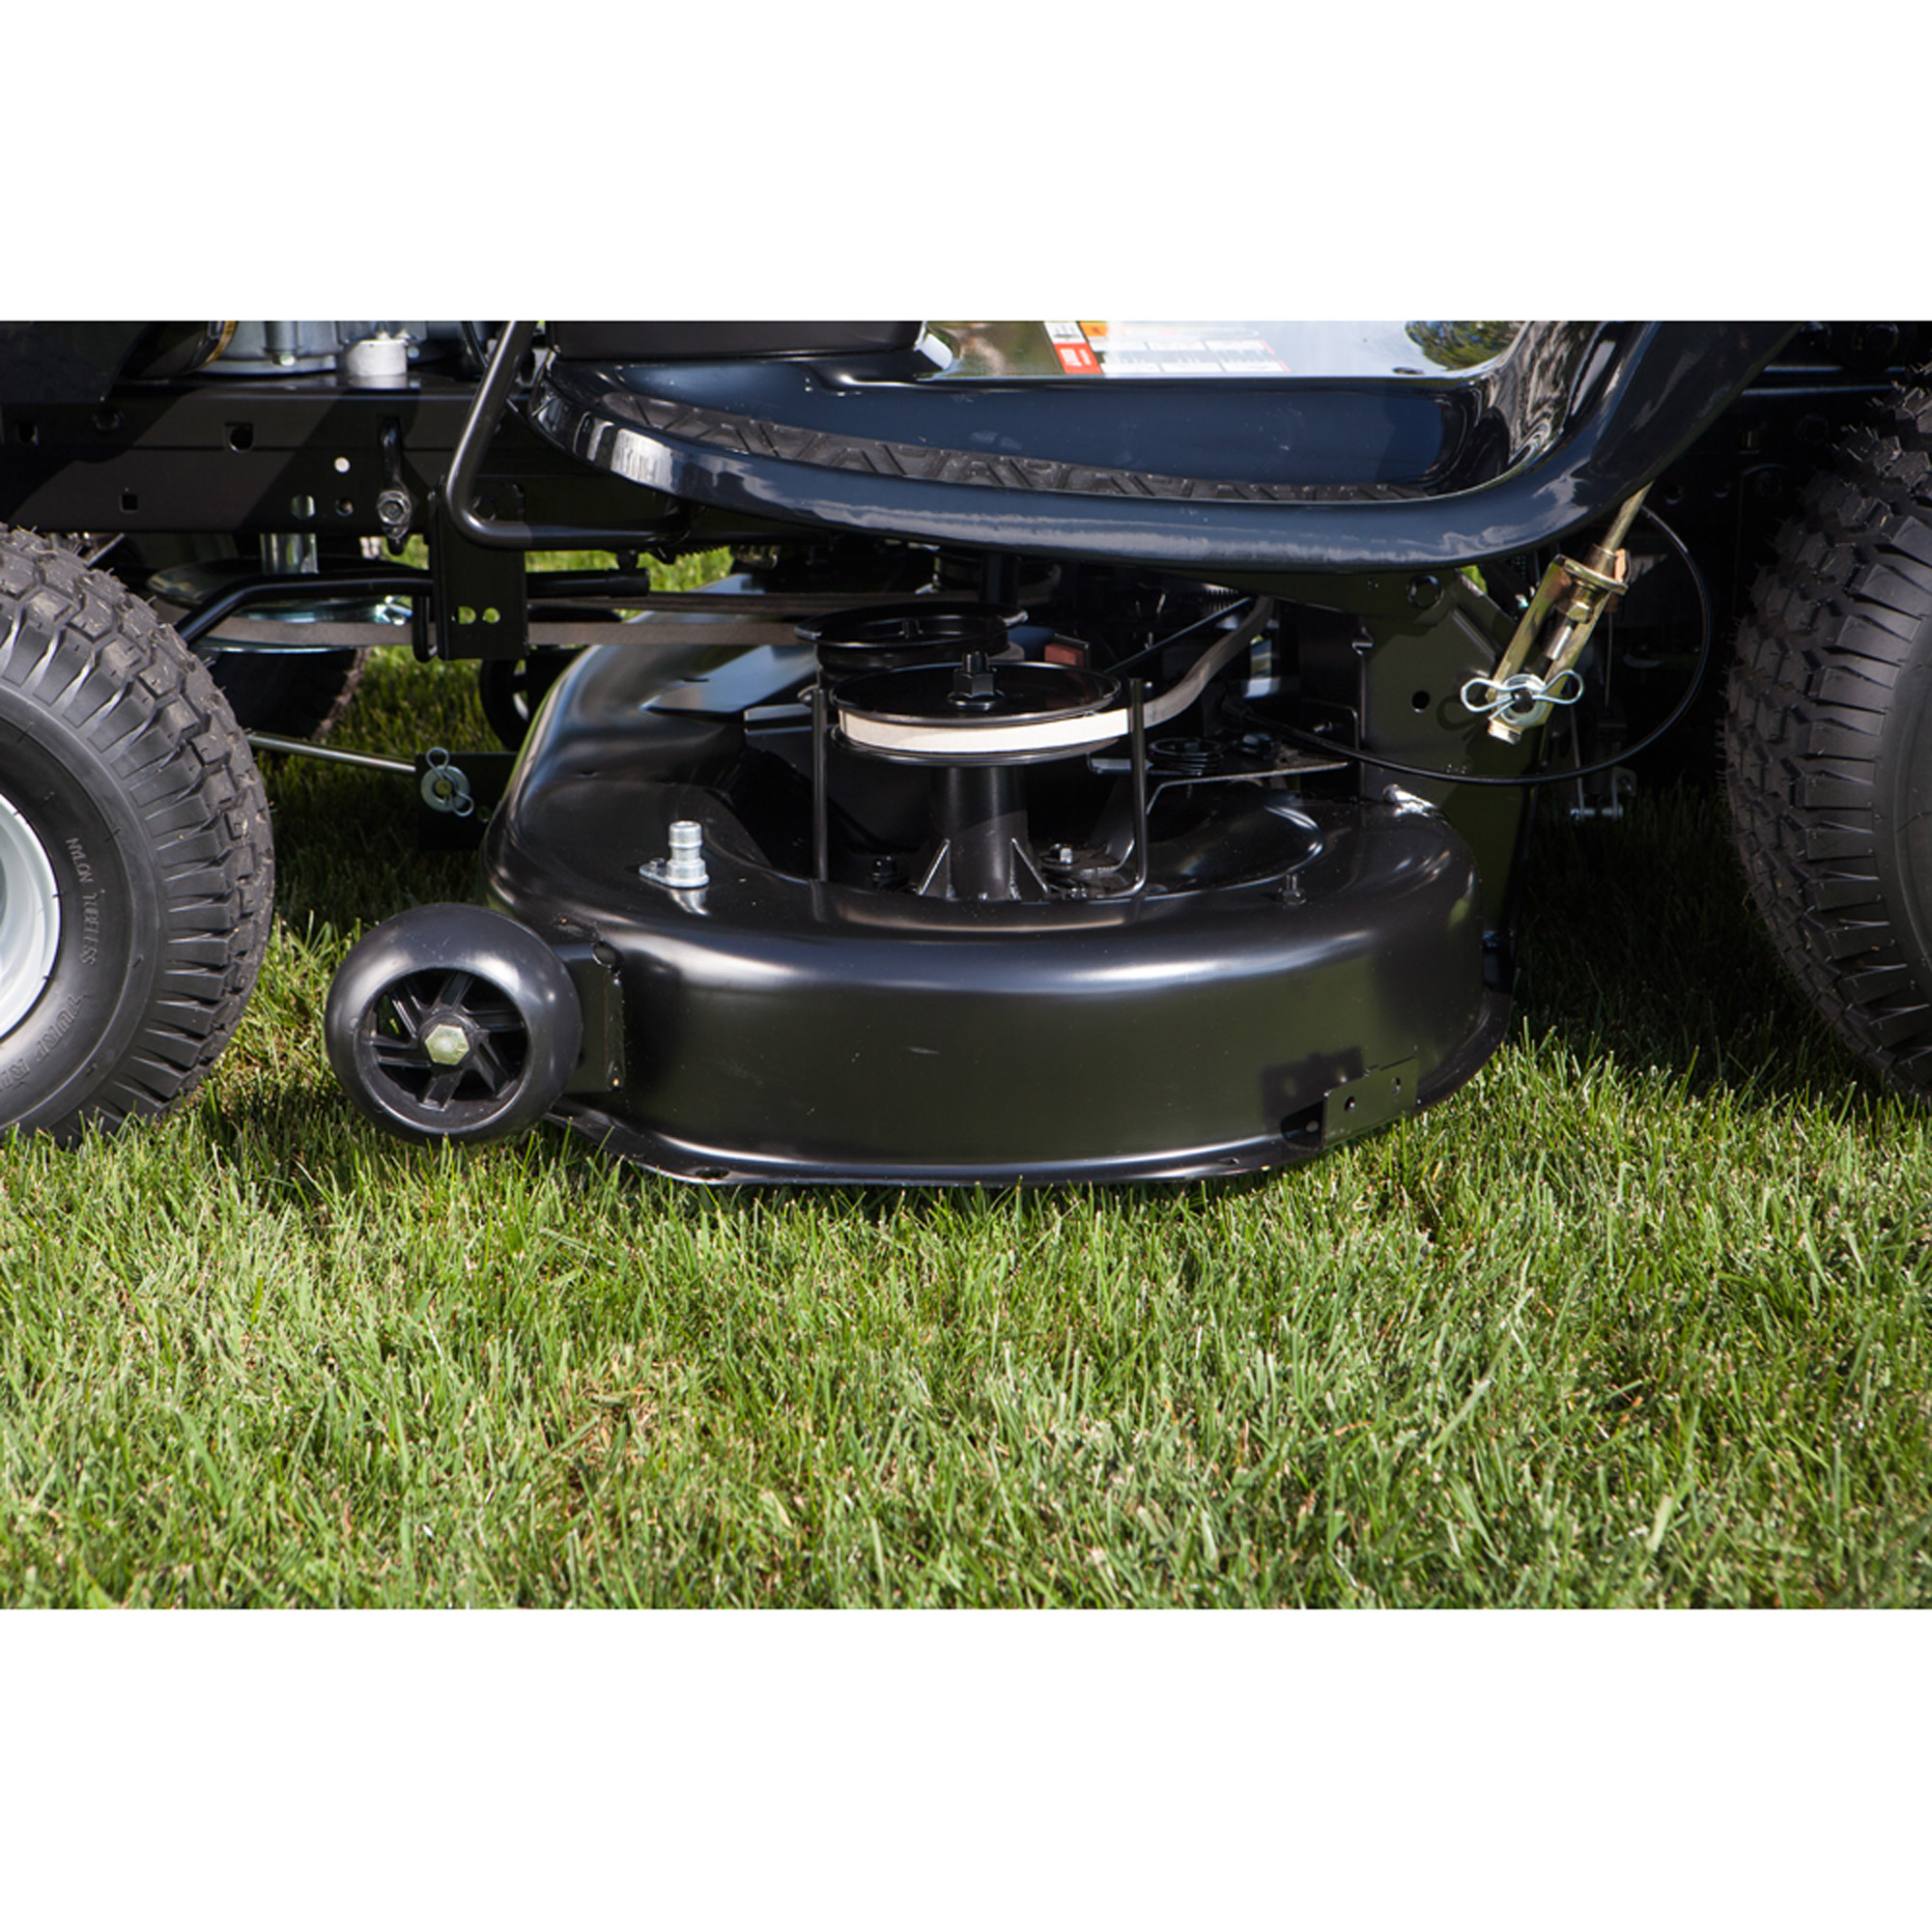 Shop mtd 42 in deck drive belt for riding lawn mowers at lowes com - Shop Mtd 42 In Deck Drive Belt For Riding Lawn Mowers At Lowes Com 45